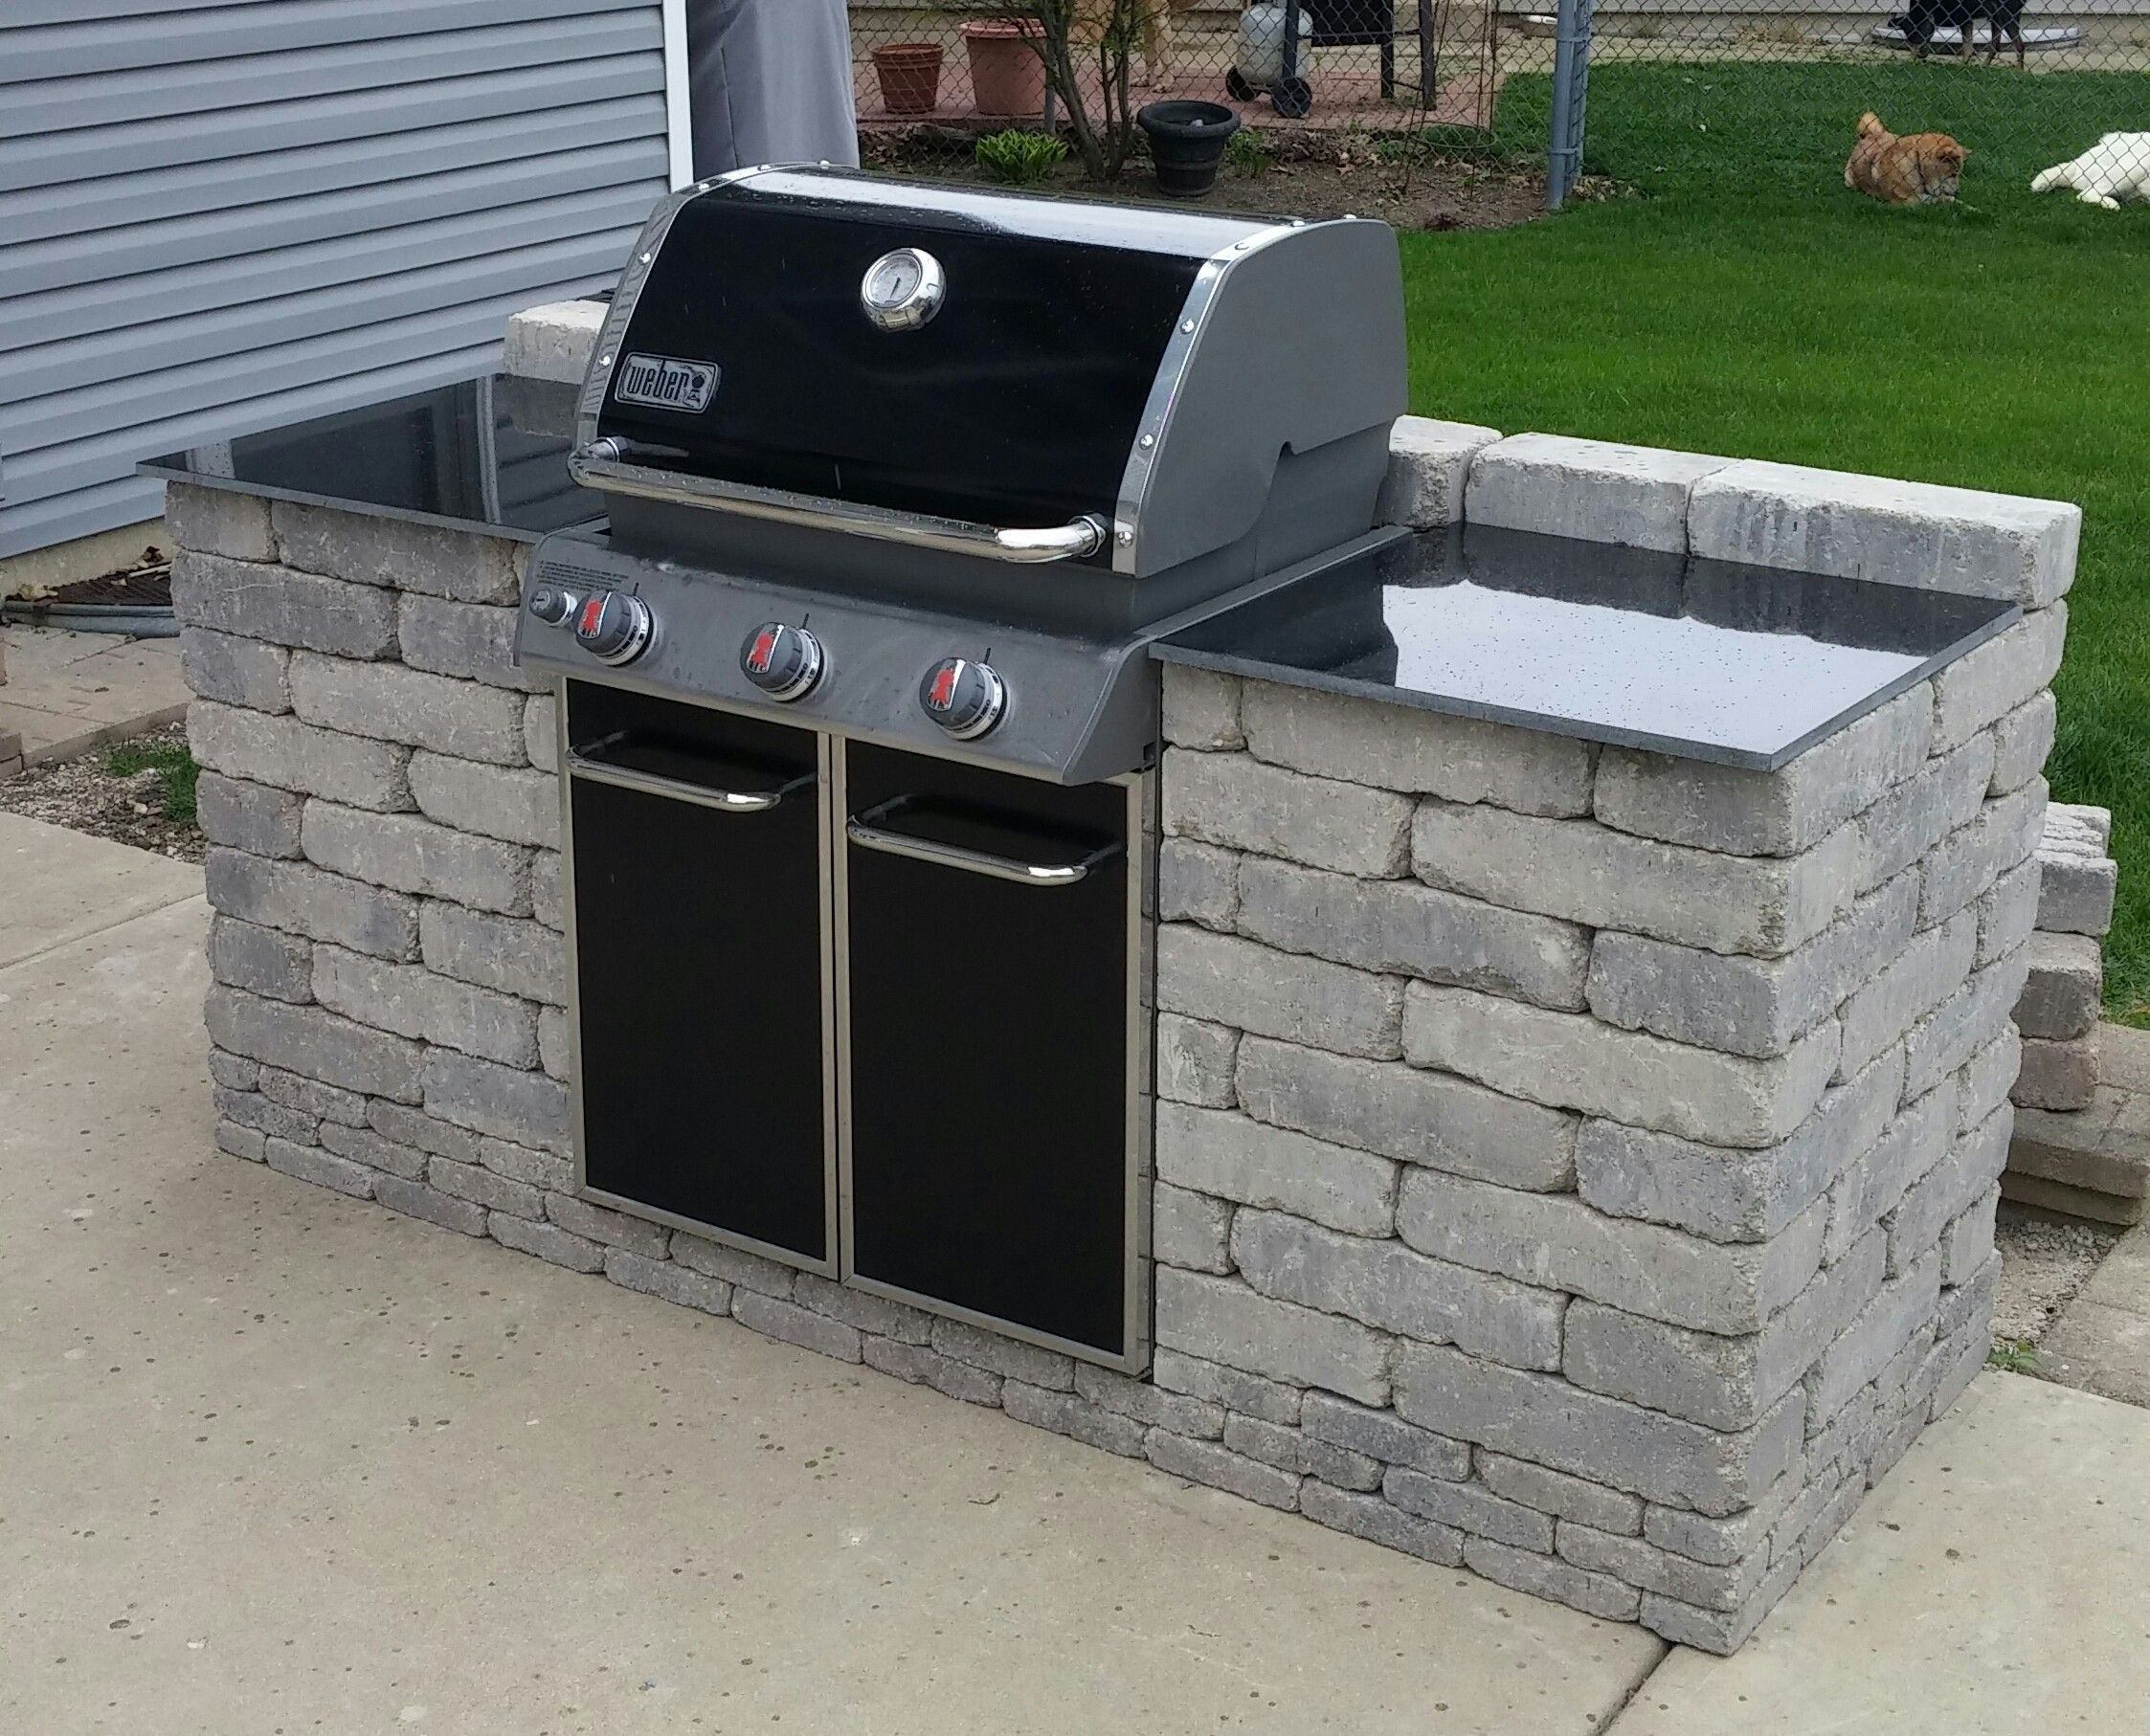 A weber mega grill bining a weber gas and charcoal Bbq into an